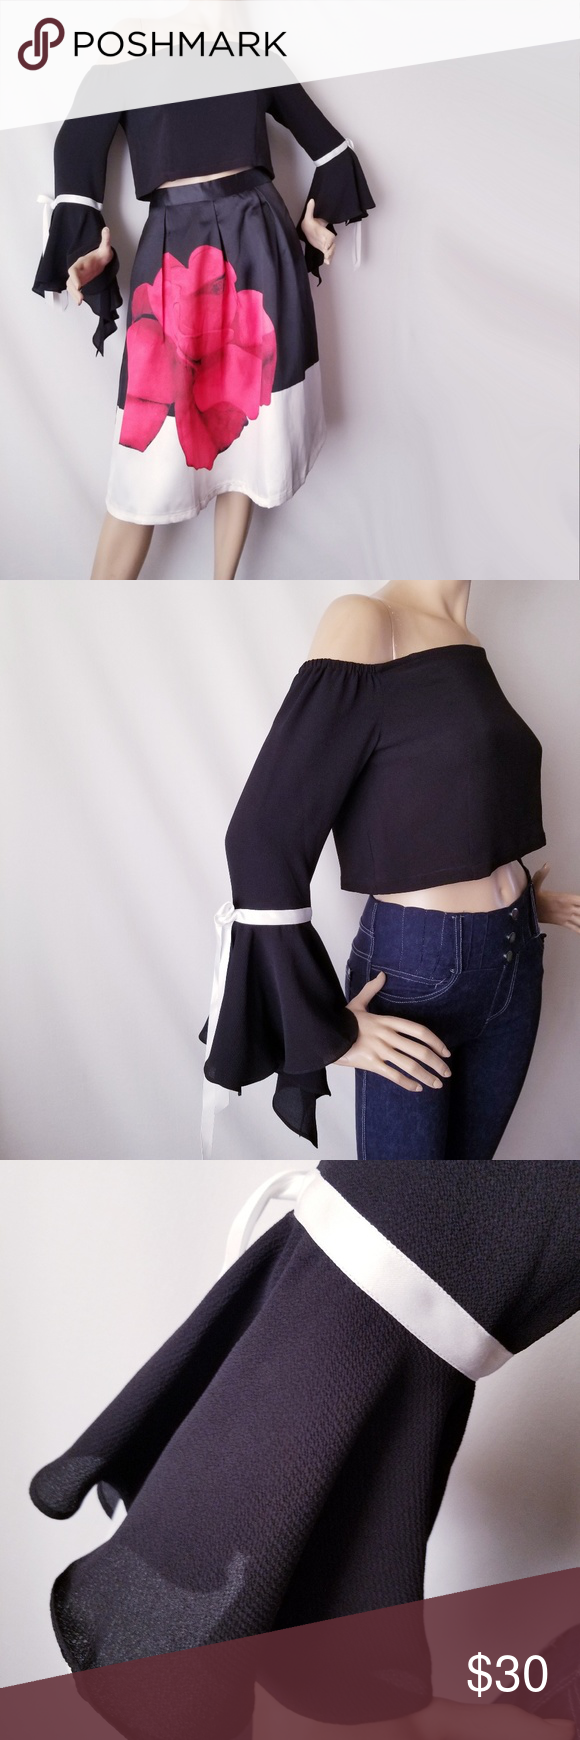 a23ff76e88c Hesperus Black Off Shoulder Top With Bell Sleeves New with tags. Black  textured crop top with white ribbon trim on the sleeves.